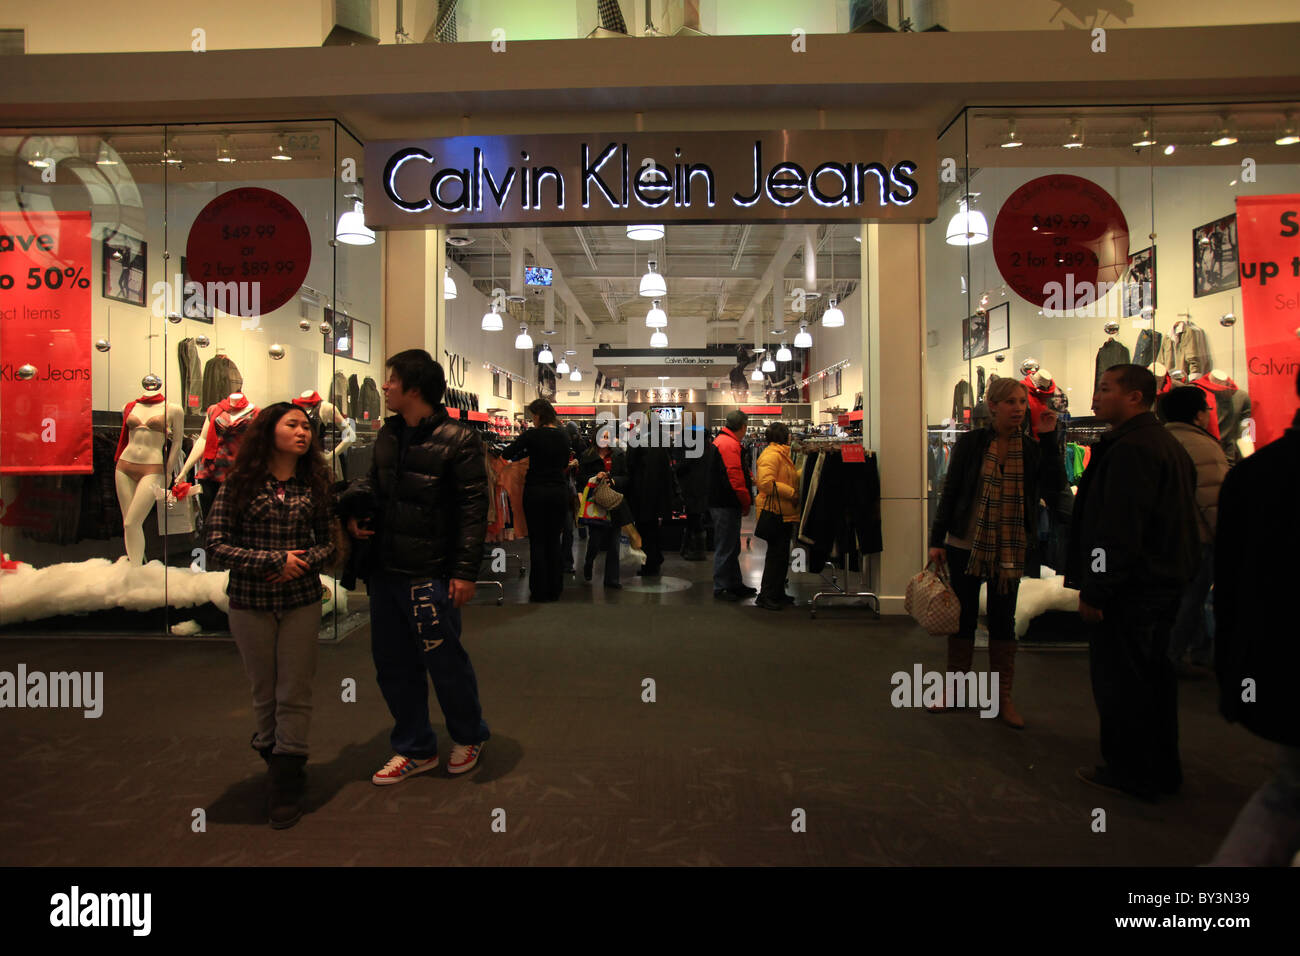 calvin klein jeans outlet store in vaughan mills mall in toronto stock photo royalty free image. Black Bedroom Furniture Sets. Home Design Ideas